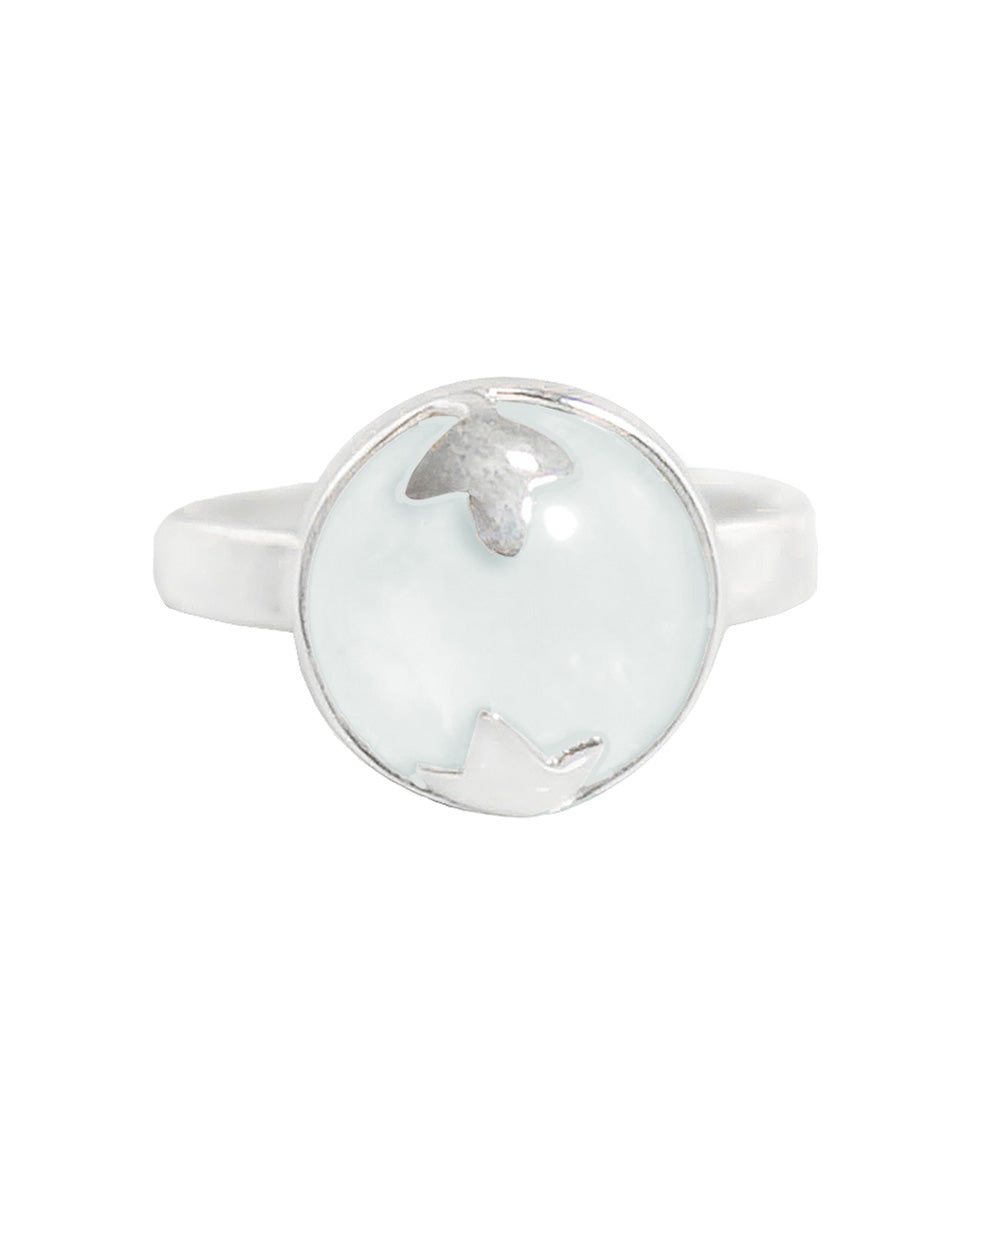 Moonstone Spellbinder Ring in 925 Sterling Silver